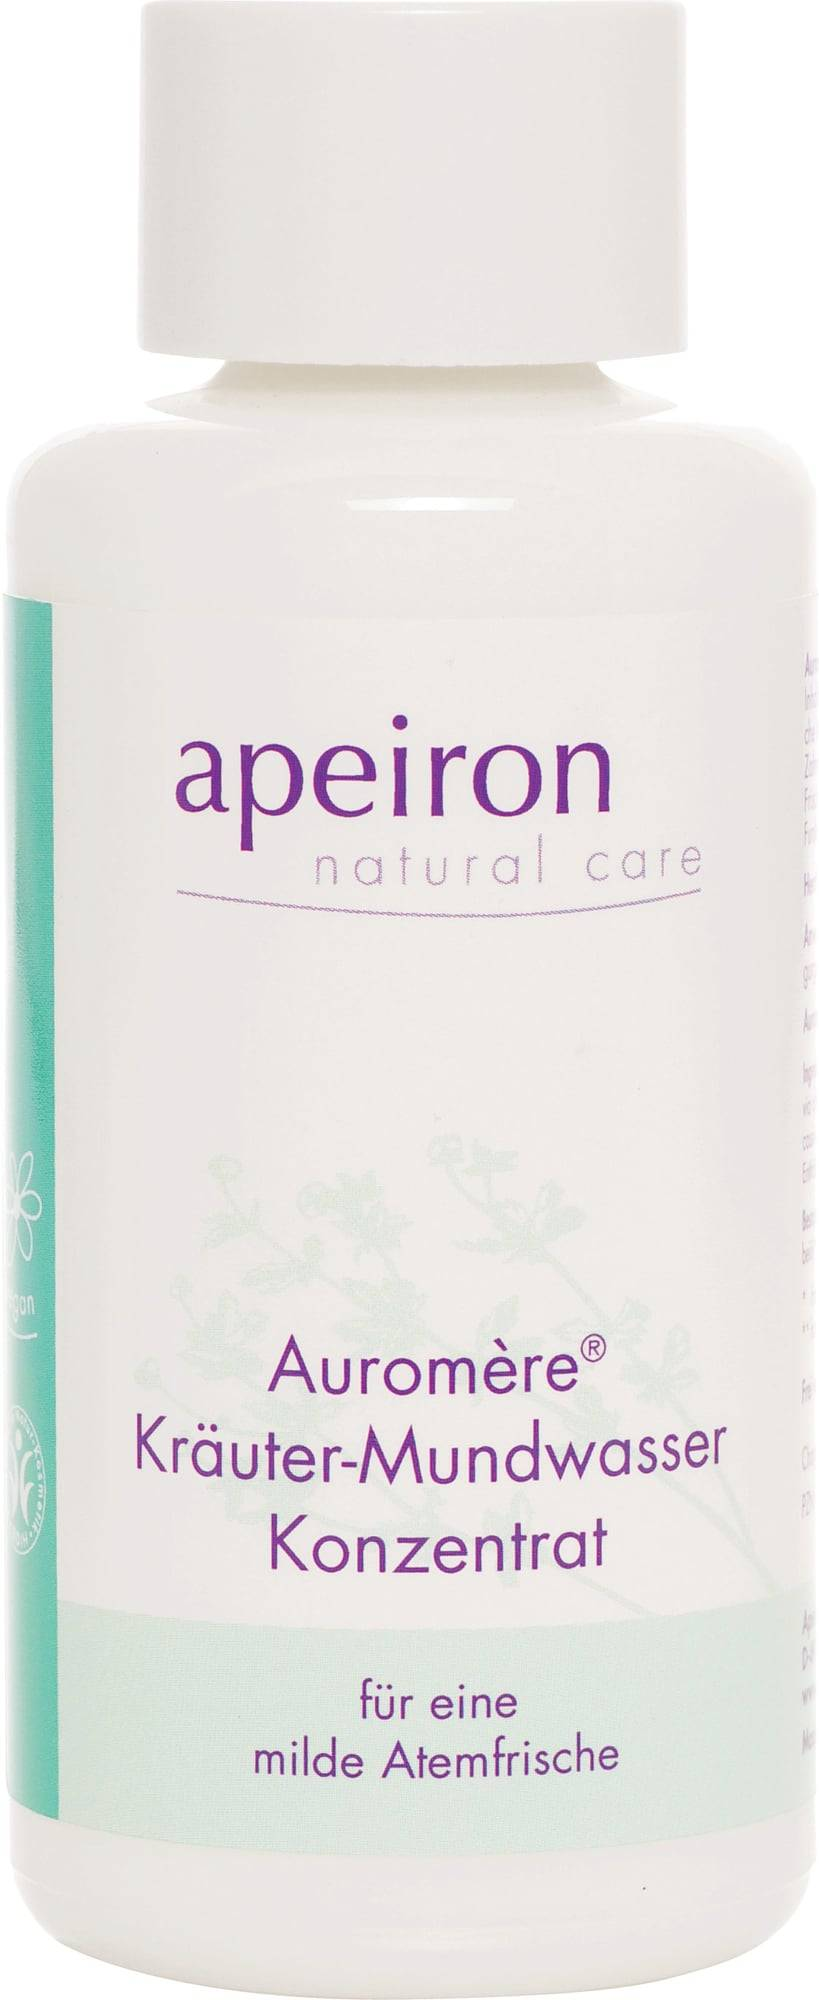 Apeiron Auromère Enjuague Bucal Concentrado - 100 ml